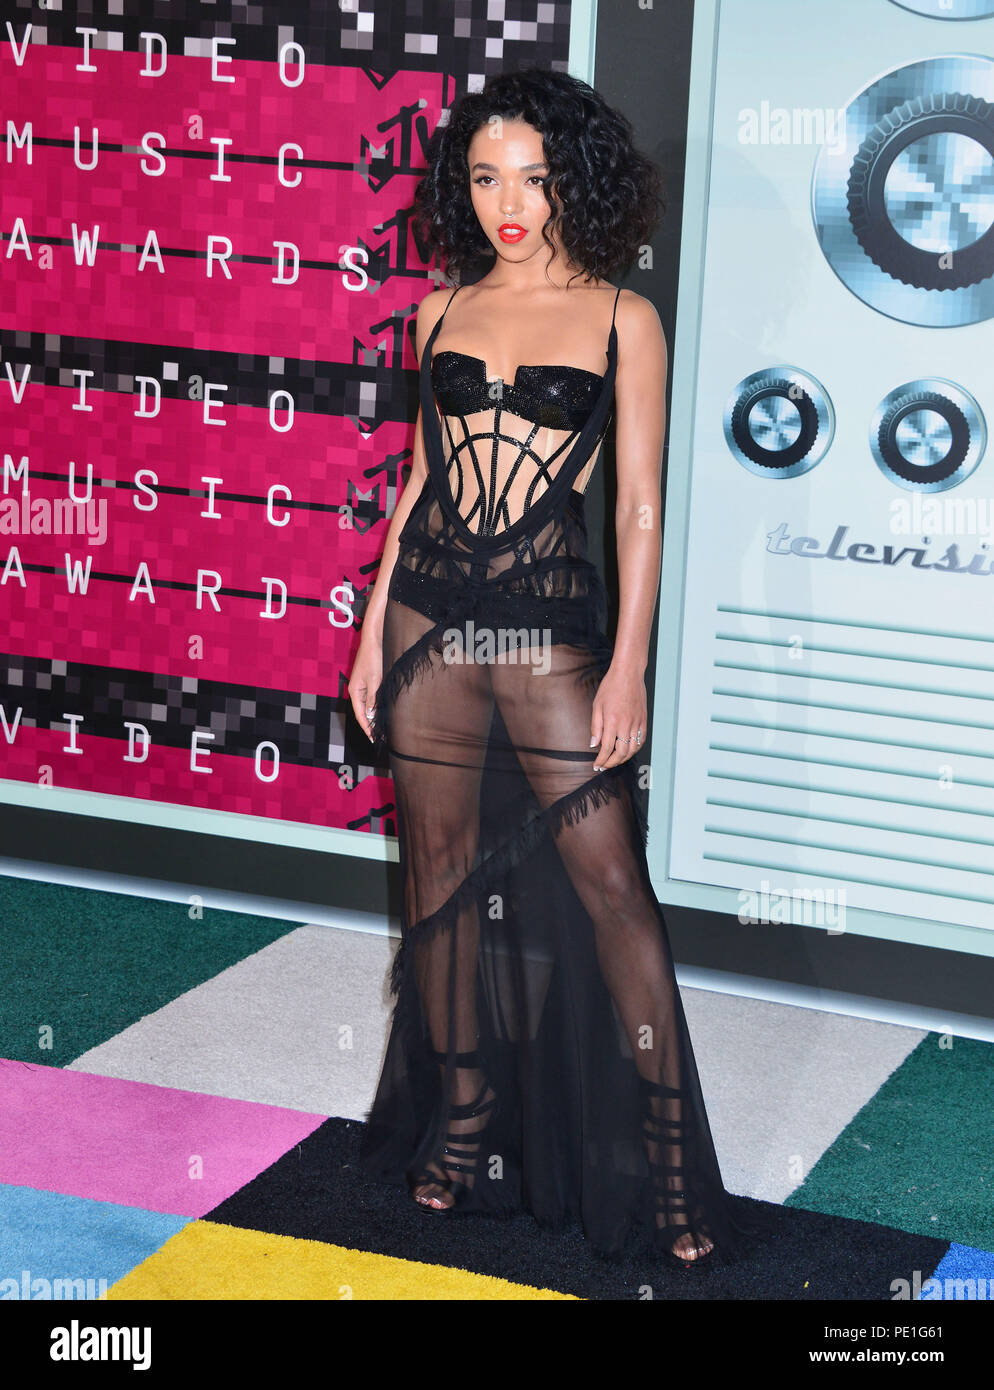 FKA Twigs 403  at the MTV VMA Awards 2015 at the Microsoft Theatre in Los Angeles. August 30, 2015.FKA Twigs 403  Event in Hollywood Life - California, Red Carpet Event, USA, Film Industry, Celebrities, Photography, Bestof, Arts Culture and Entertainment, Topix Celebrities fashion, Best of, Hollywood Life, Event in Hollywood Life - California, Red Carpet and backstage, movie celebrities, TV celebrities, Music celebrities, Topix, Bestof, Arts Culture and Entertainment, vertical, one person, Photography,   Fashion, full length, 2015 inquiry tsuni@Gamma-USA.com , Credit Tsuni / USA, - Stock Image